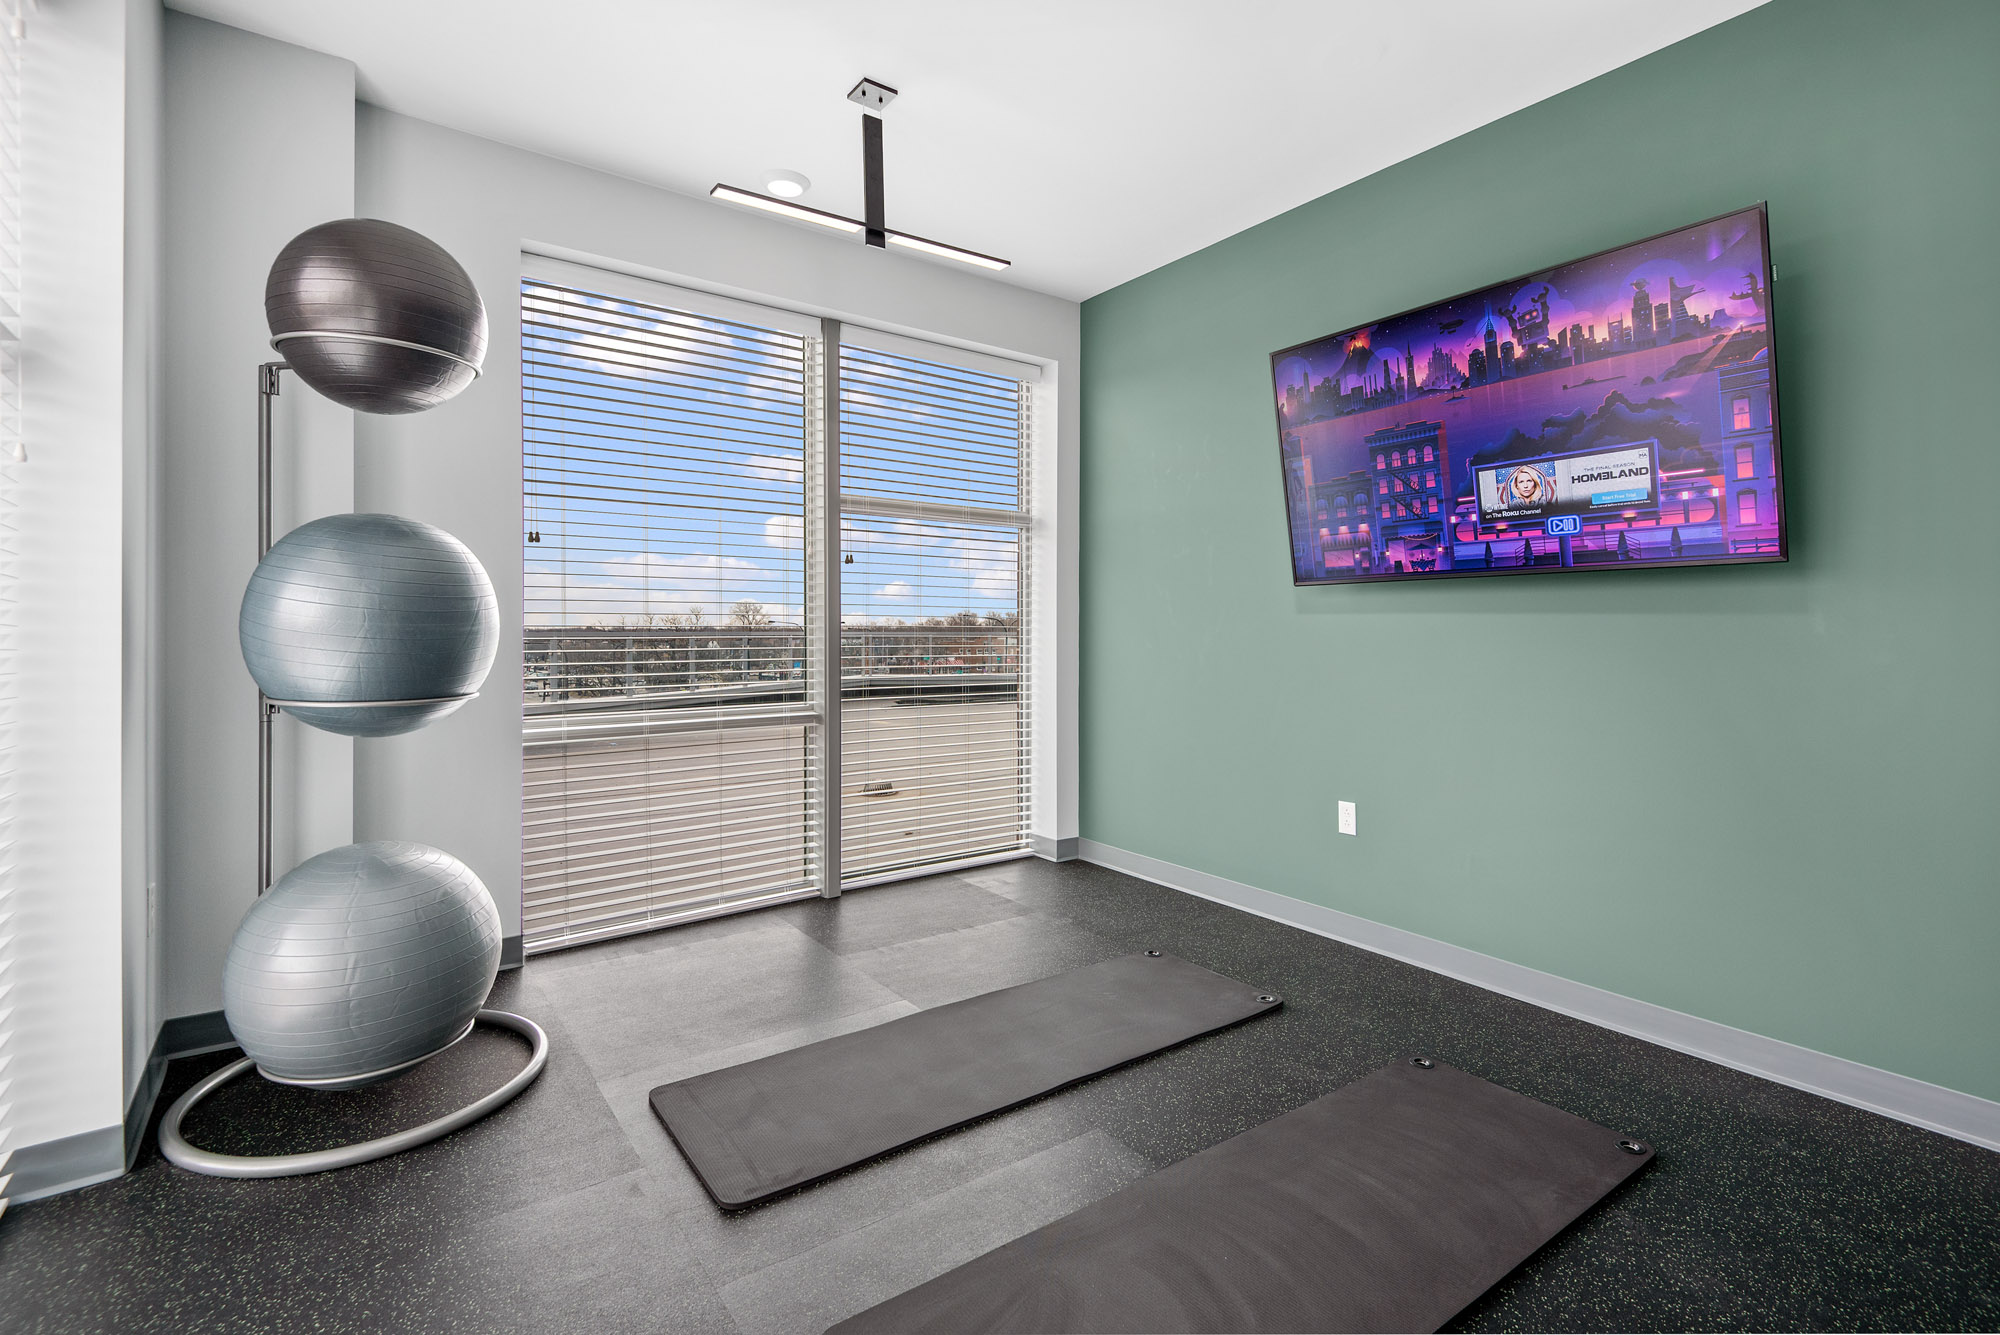 Yoga room with TV, exersize balls, and two yoga mats